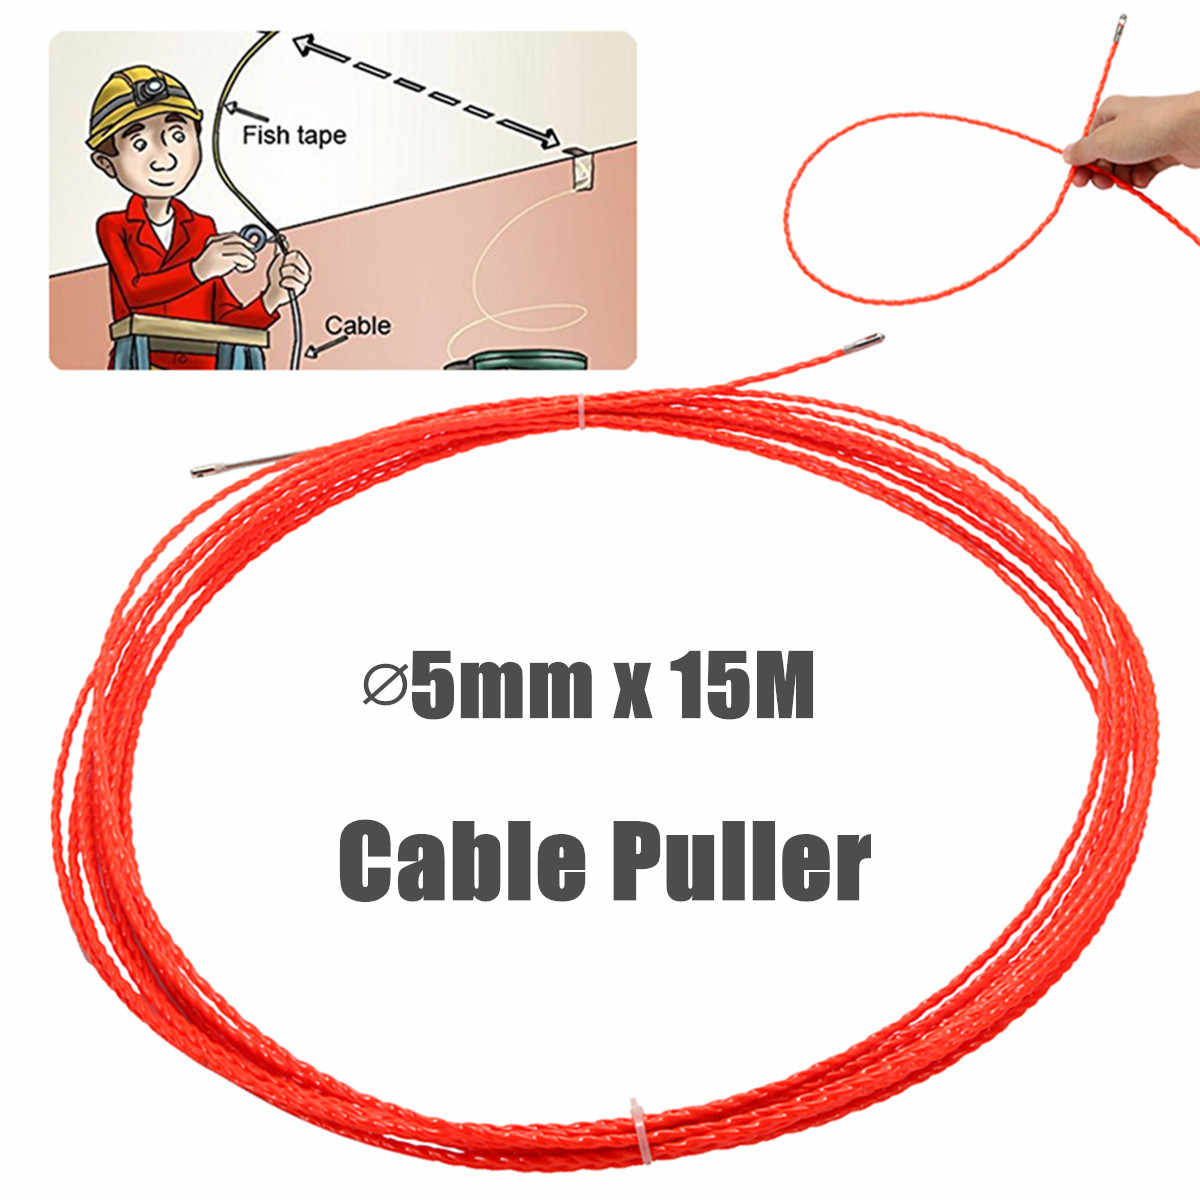 15M 5mm Professional Cable Push Puller Rodder Reel Conduit Snake Fish Tape Wire Electrical Wiring Accessories Cabling Tools